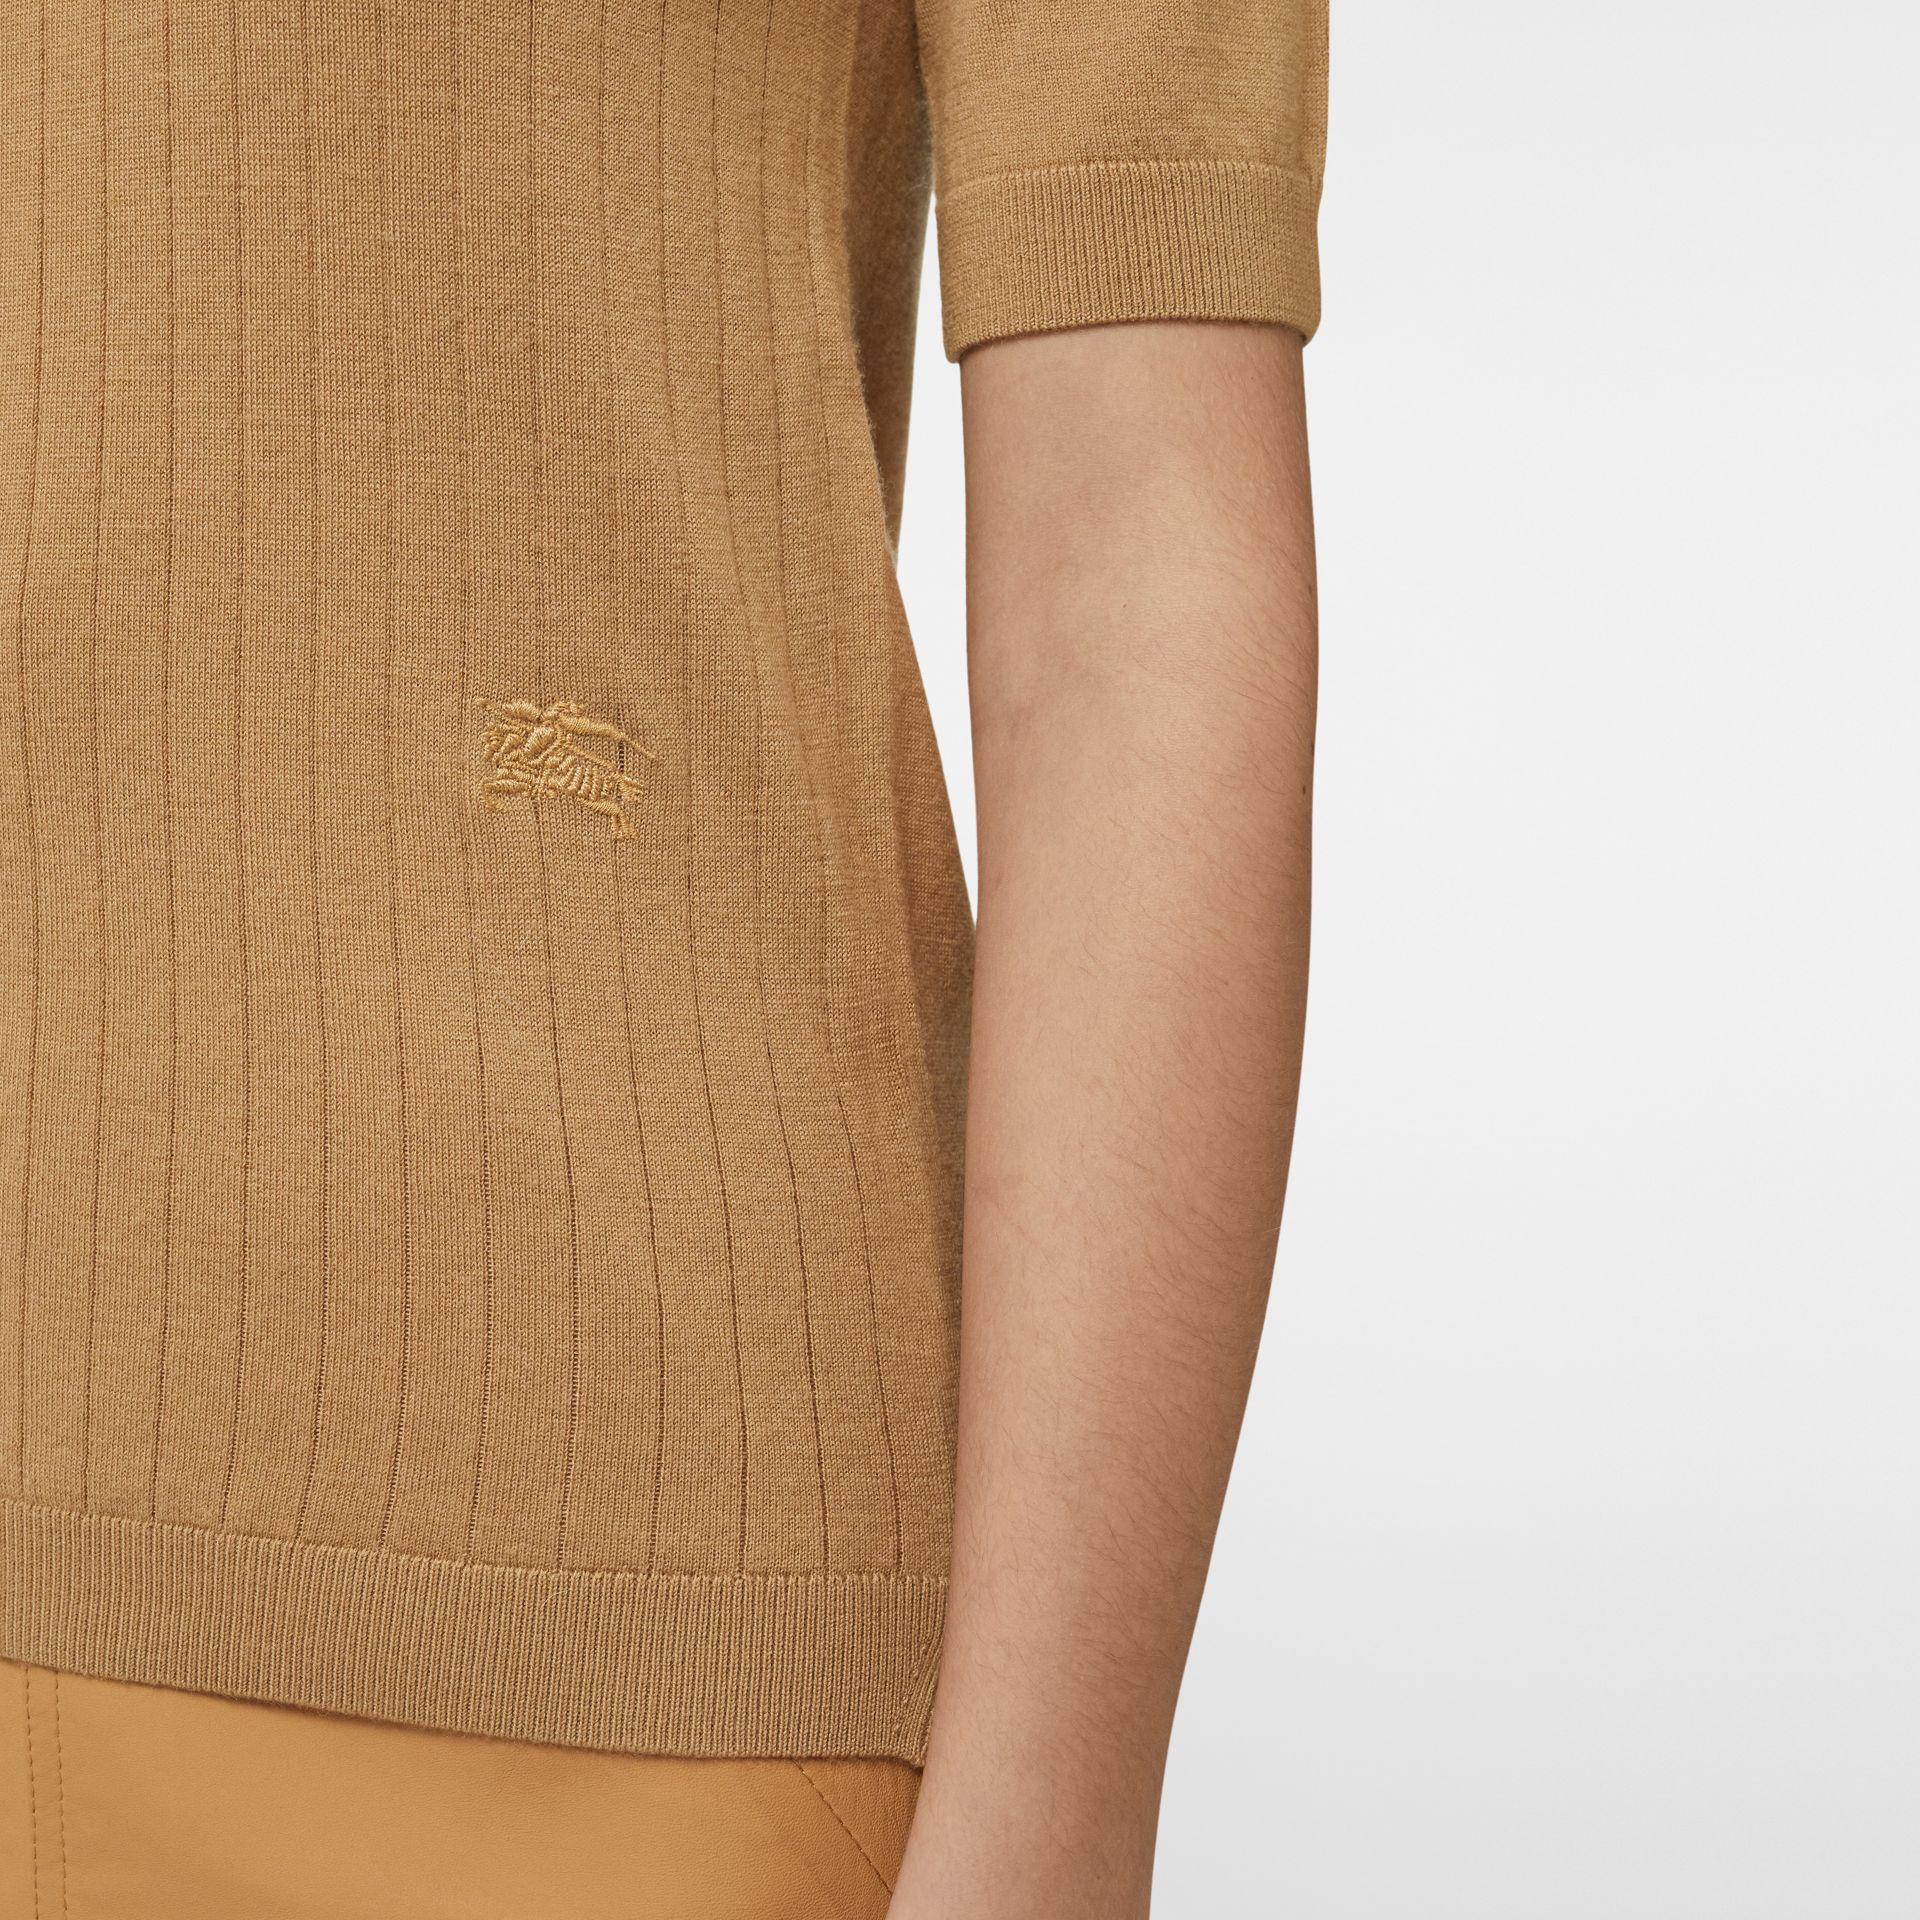 Short-sleeve Rib Knit Cashmere Sweater in Camel - Women | Burberry - gallery image 4